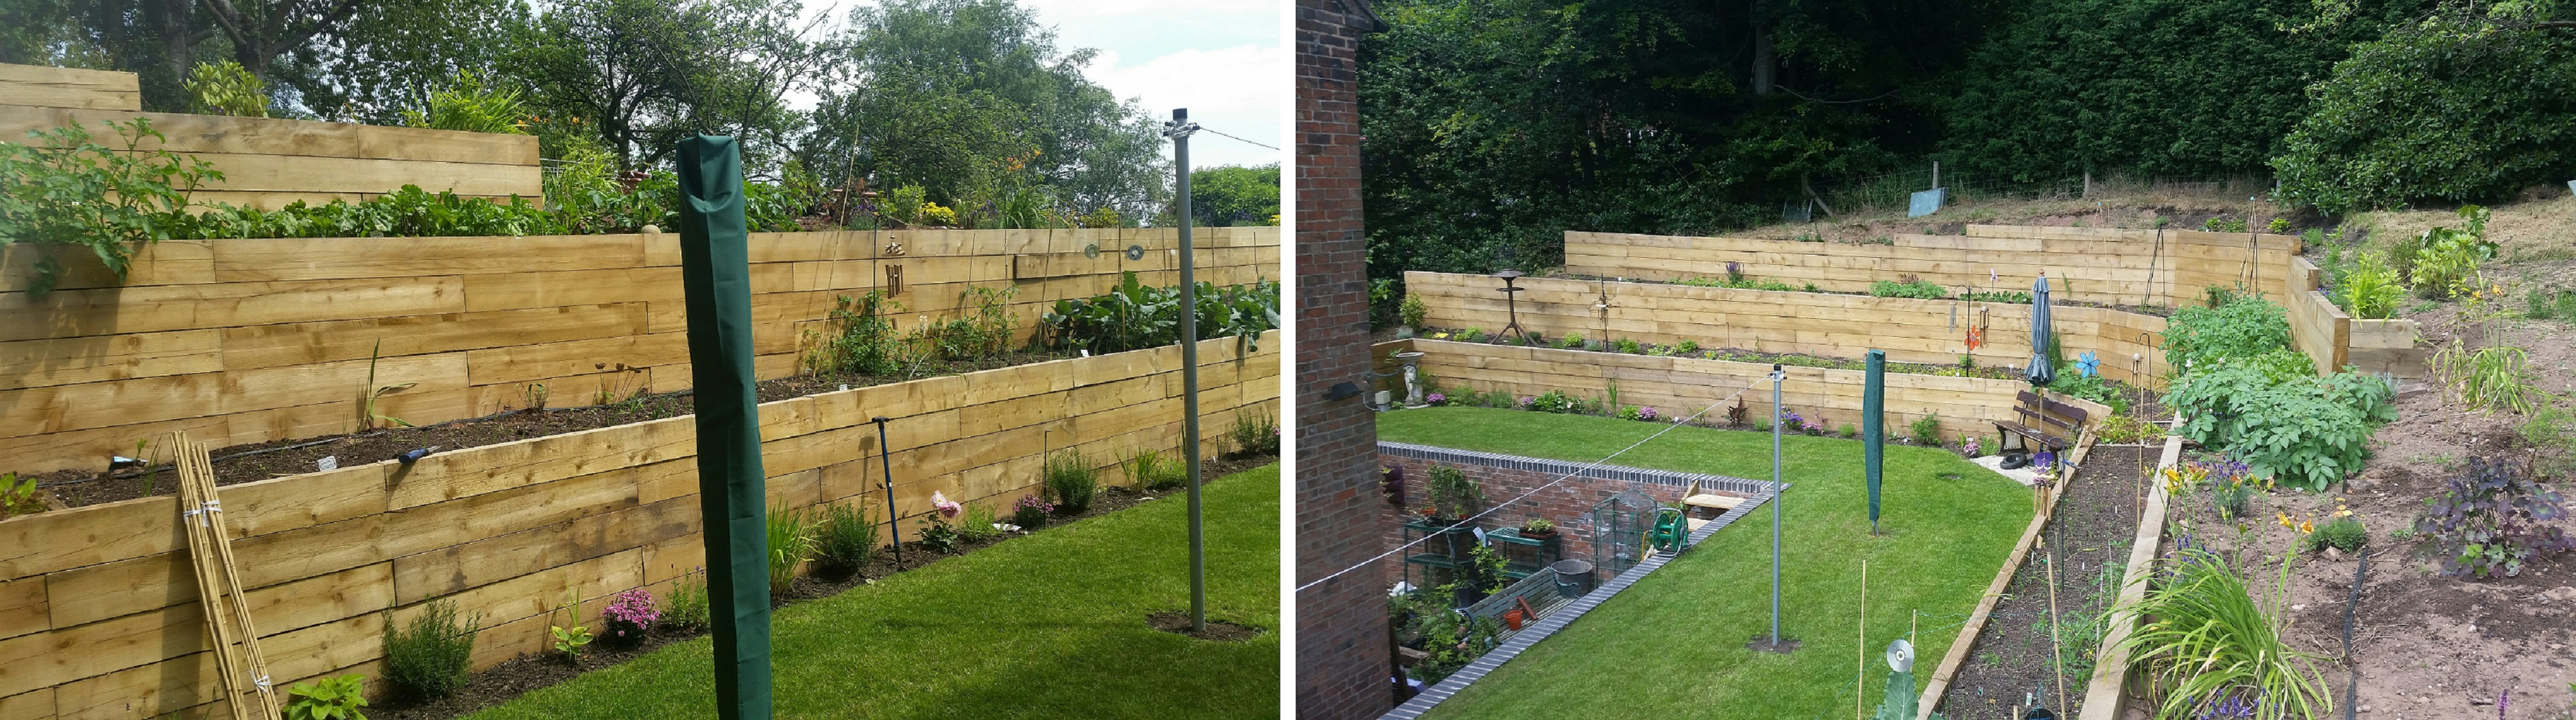 Landscaping in Cheadle, Staffordshire - Railway Sleeper Retaining Walls